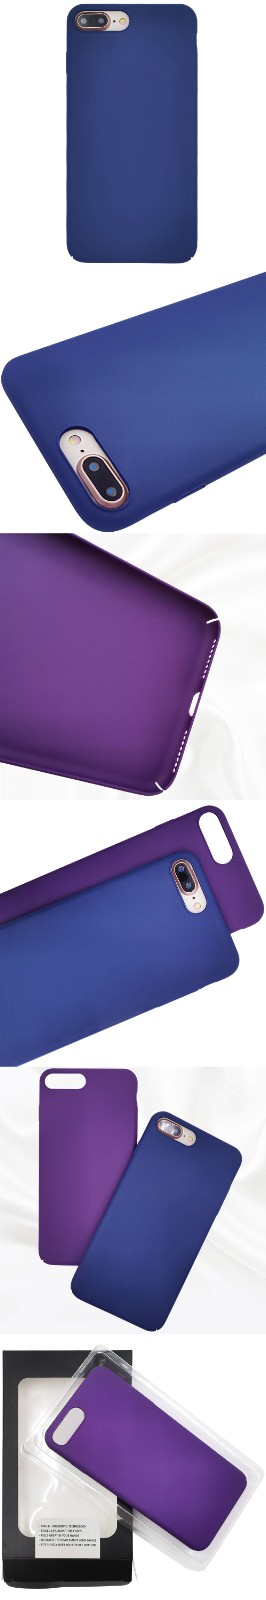 TenChen Tech-Oem Odm Personalised Phone Case Price List | Tenchen Tech